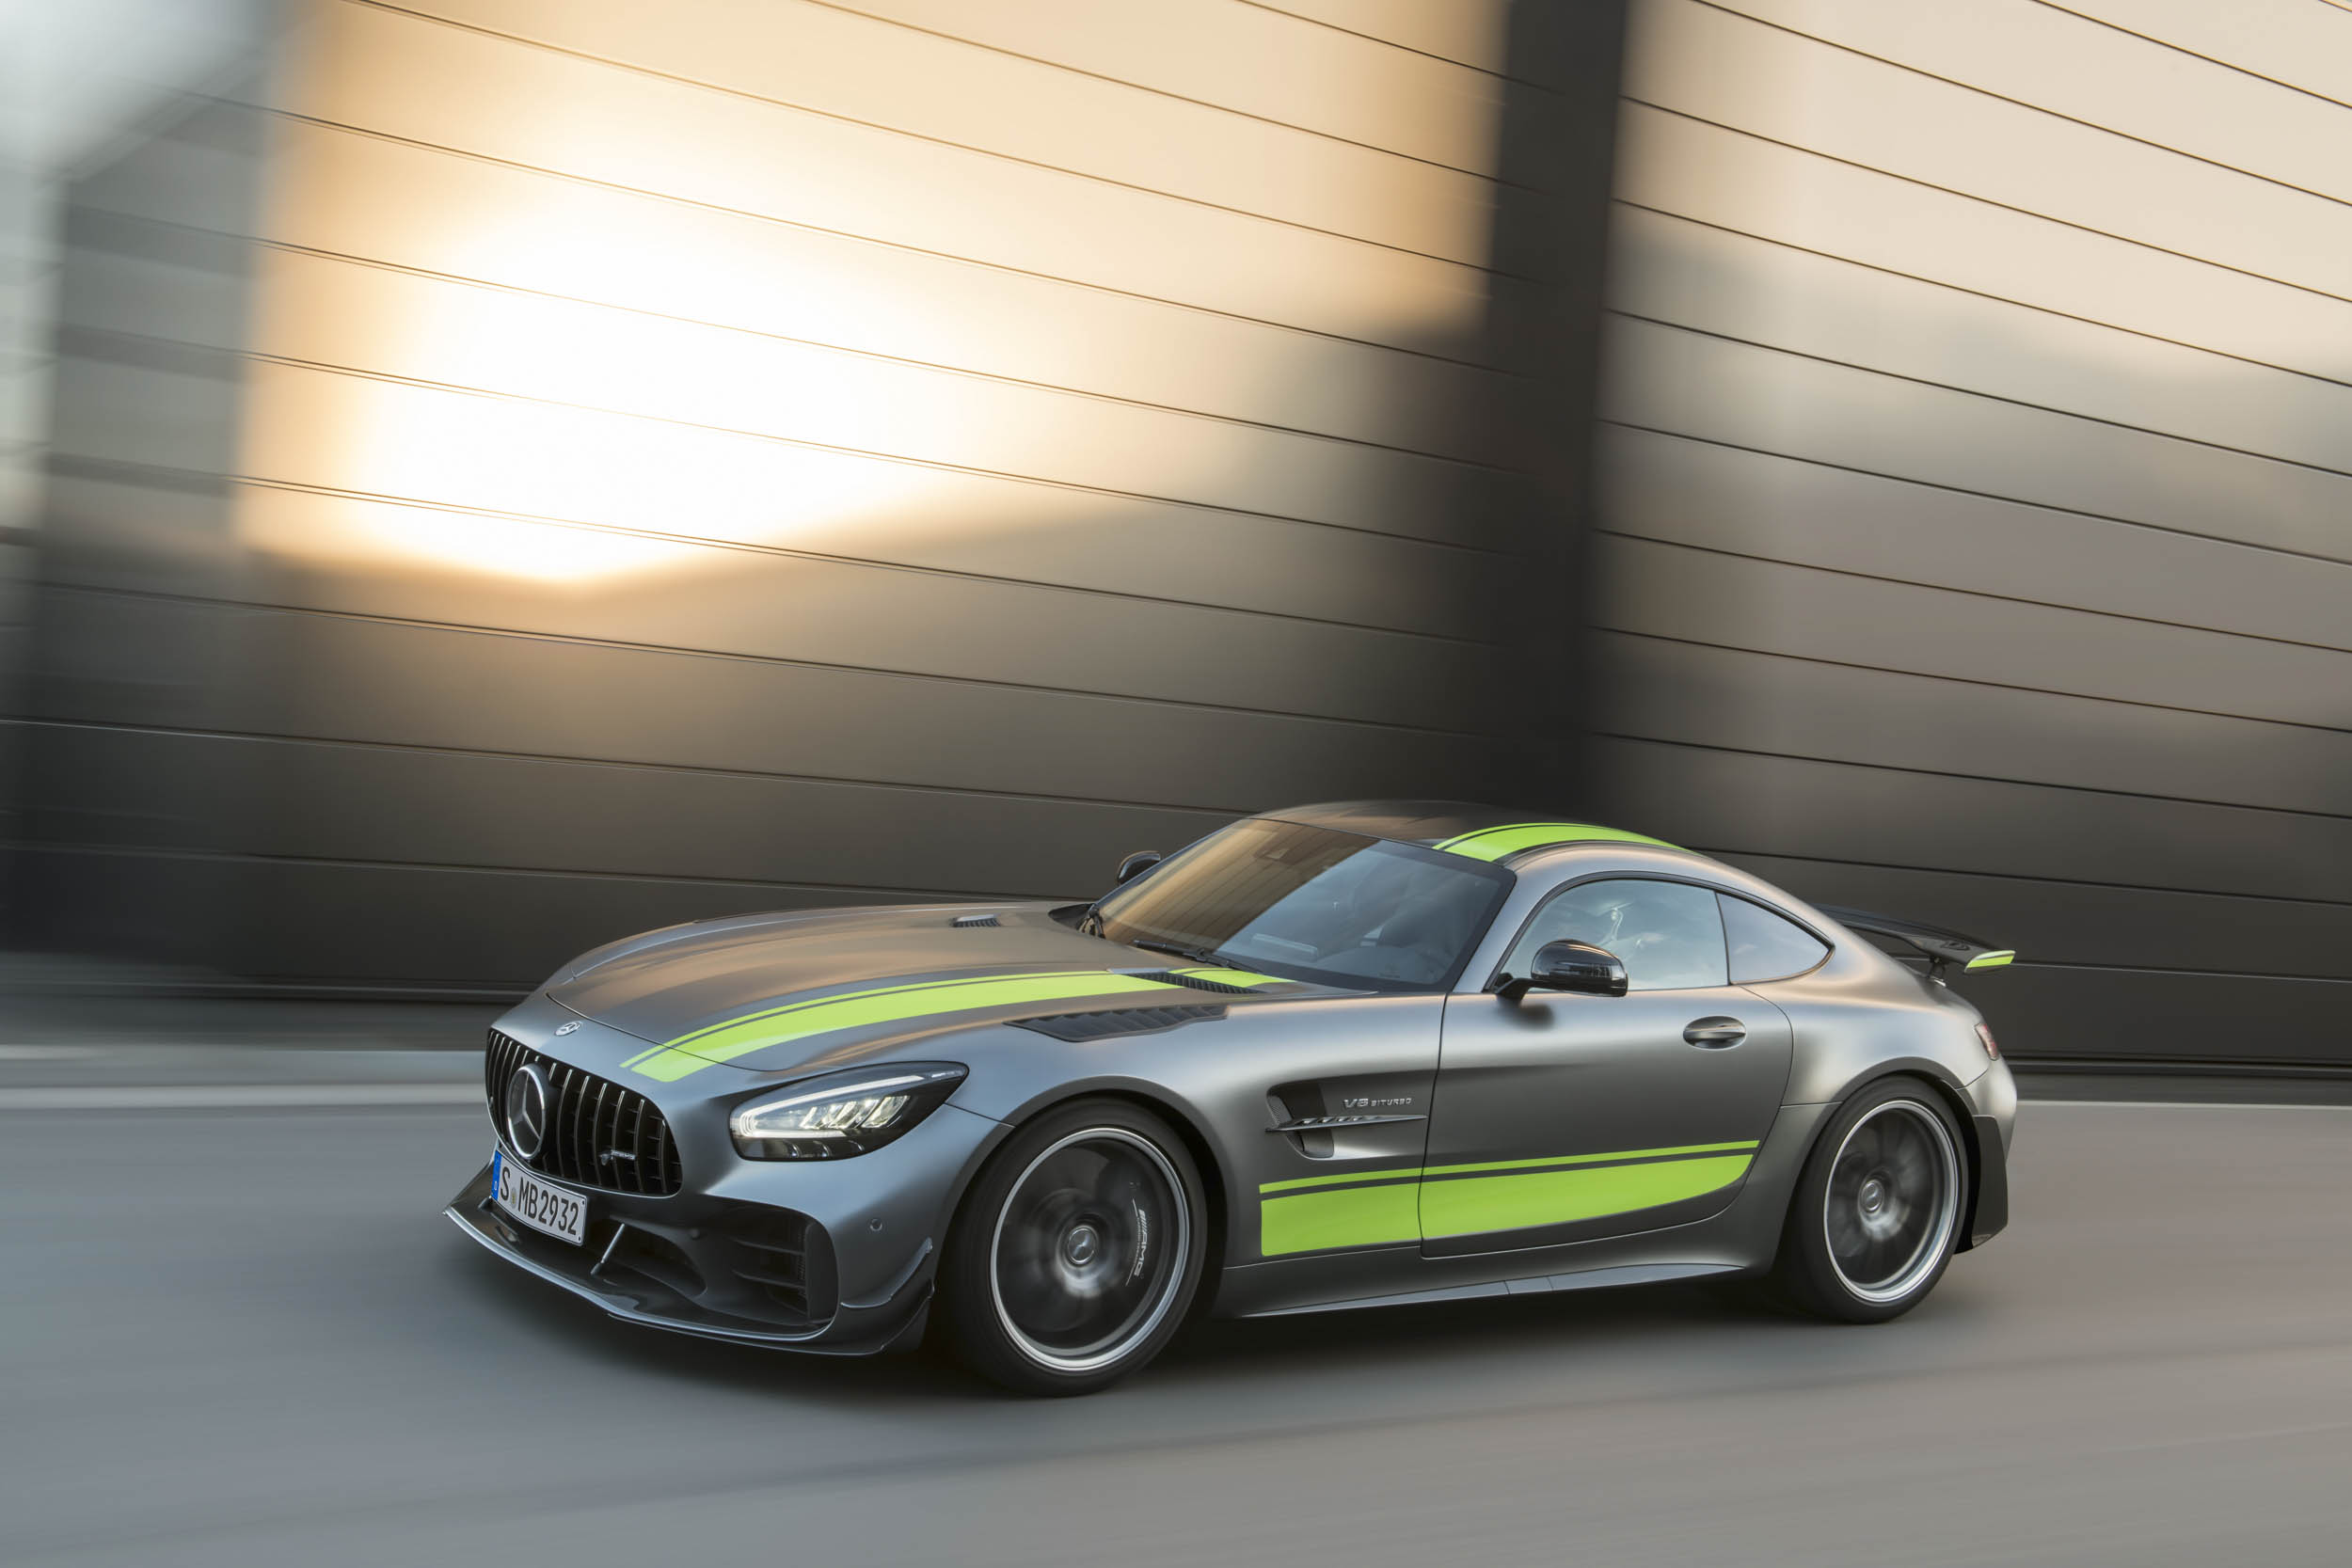 Mercedes-AMG GT R Pro front 3/4 driving